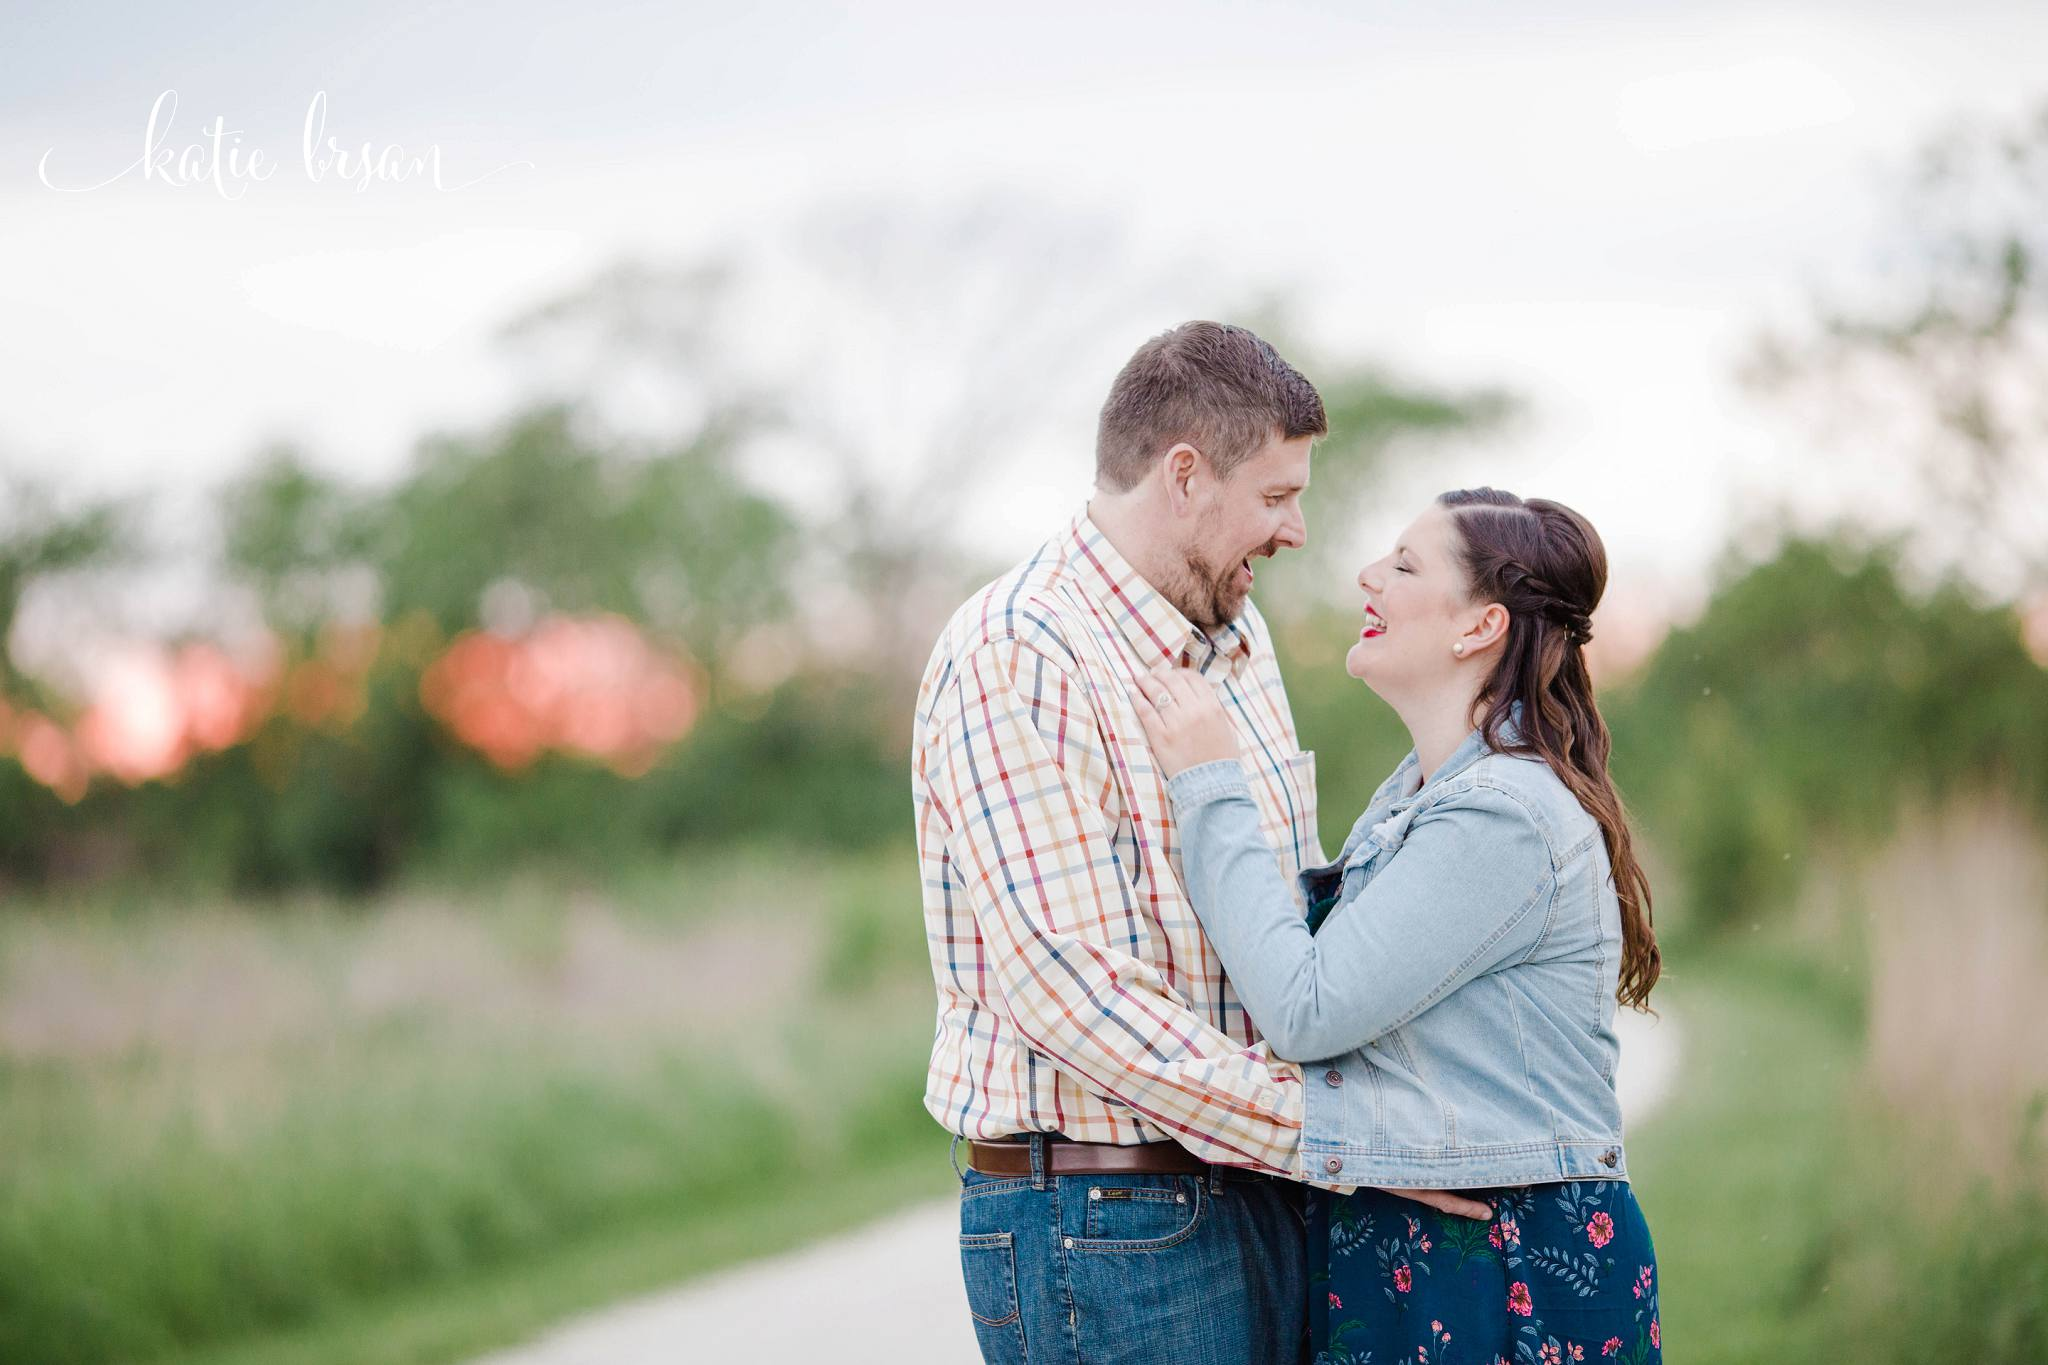 KatieBrsan-HomerGlen-NewLenox-EngagementSession-HadleyValley-TeacherEngagementSession-ChicagoWeddingPhotographer_0589.jpg